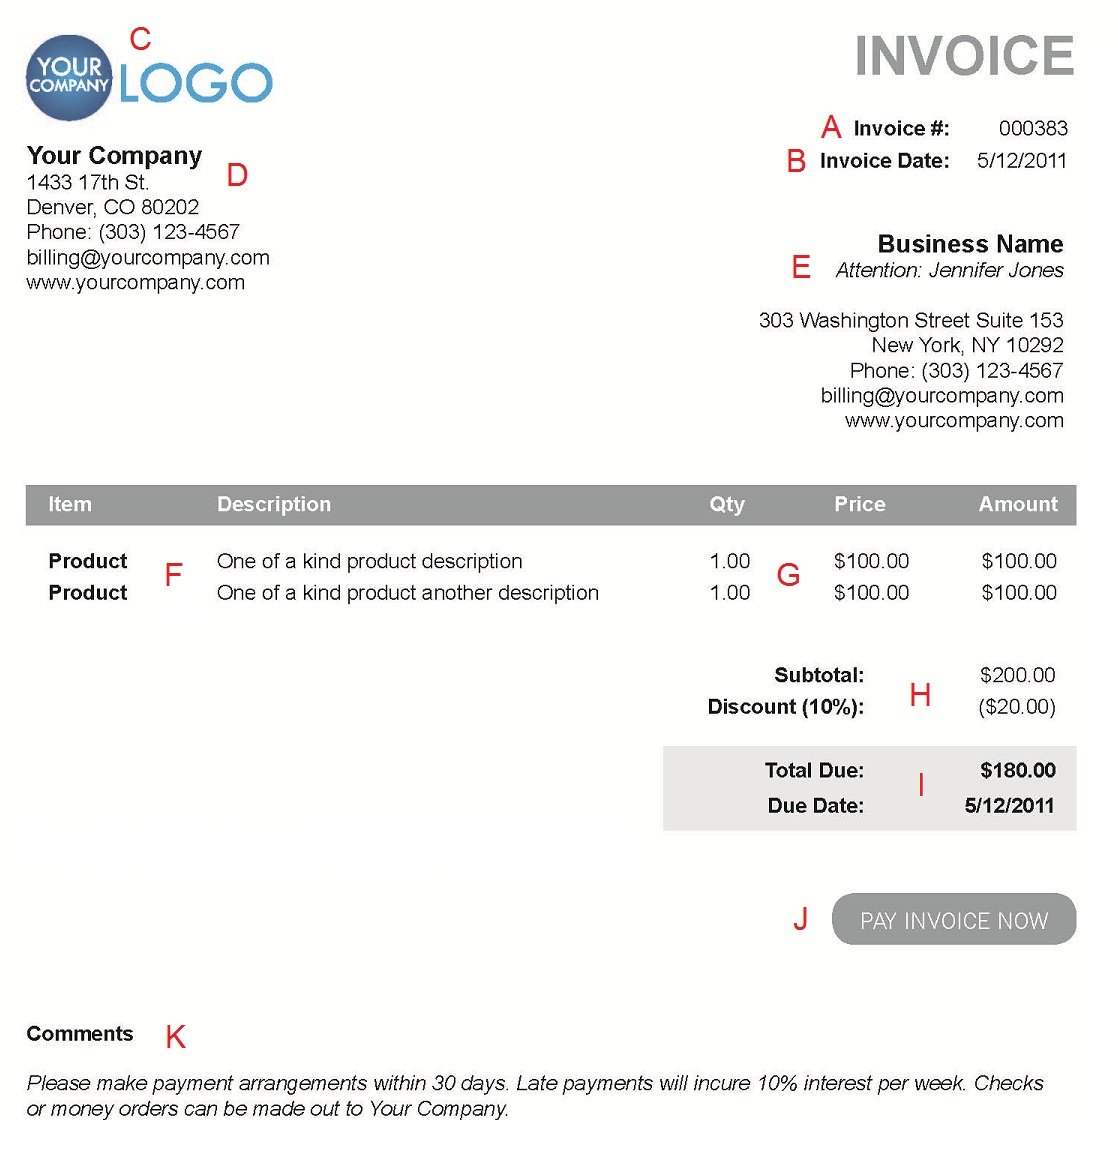 Opposenewapstandardsus  Surprising The  Different Sections Of An Electronic Payment Invoice With Licious A  With Amusing Shipping Invoice Example Also Sample Invoice Template Australia In Addition Return To Invoice Insurance And Proforma Commercial Invoice As Well As Internet Invoice Additionally Online Invoice Template Free From Paysimplecom With Opposenewapstandardsus  Licious The  Different Sections Of An Electronic Payment Invoice With Amusing A  And Surprising Shipping Invoice Example Also Sample Invoice Template Australia In Addition Return To Invoice Insurance From Paysimplecom